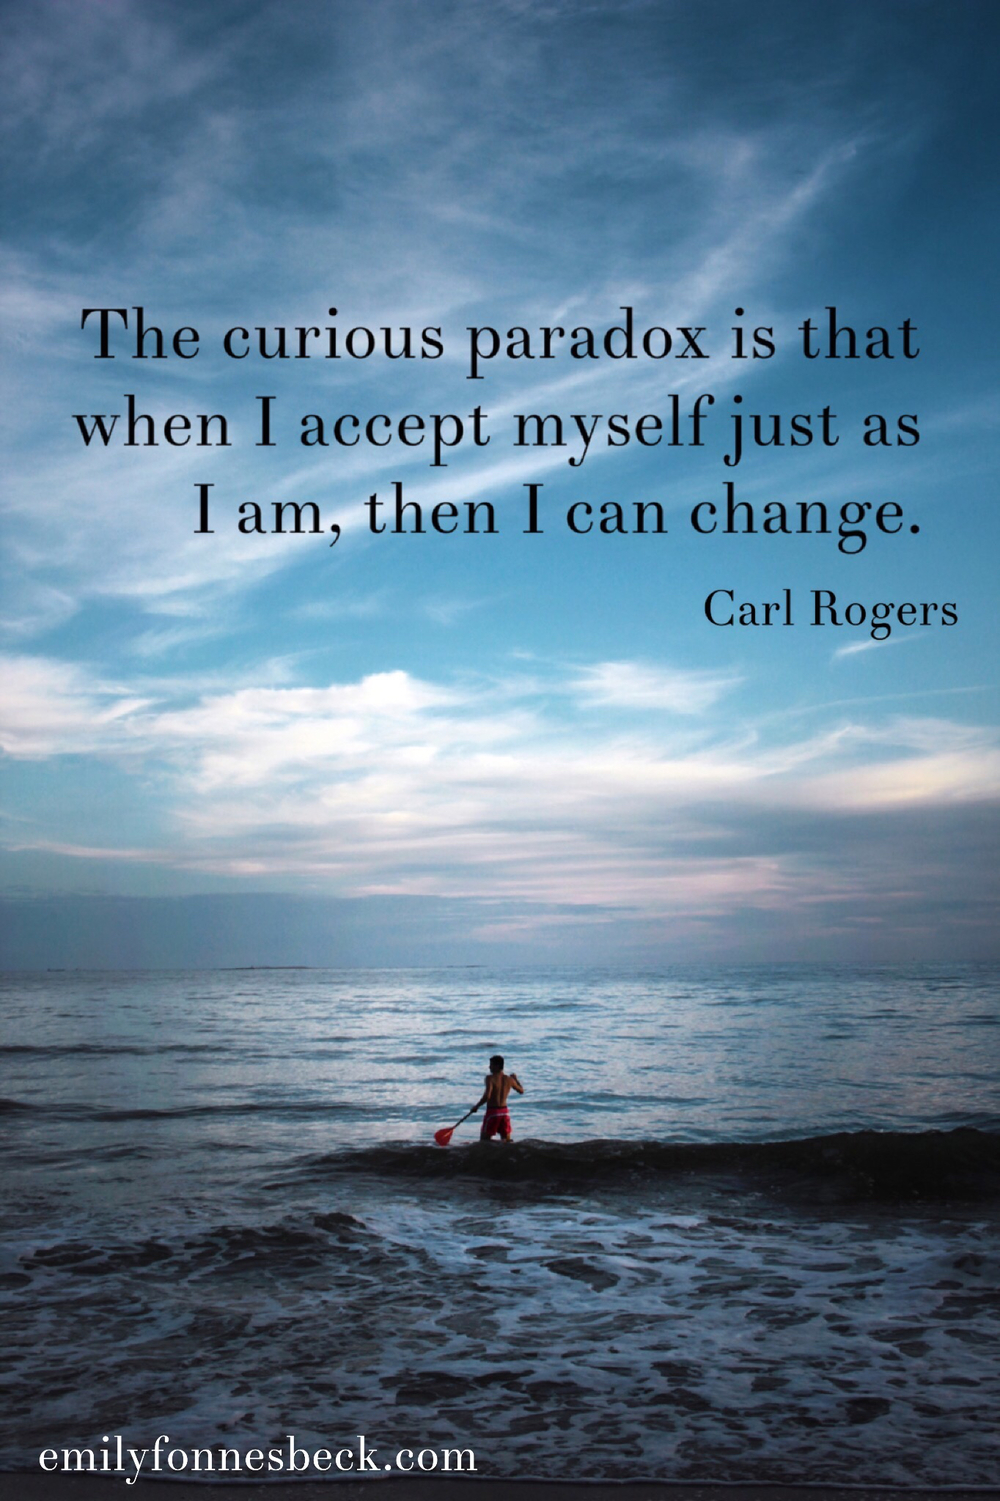 The curious paradox is that when I accept myself just as i am, then i can change. Carl Rogers